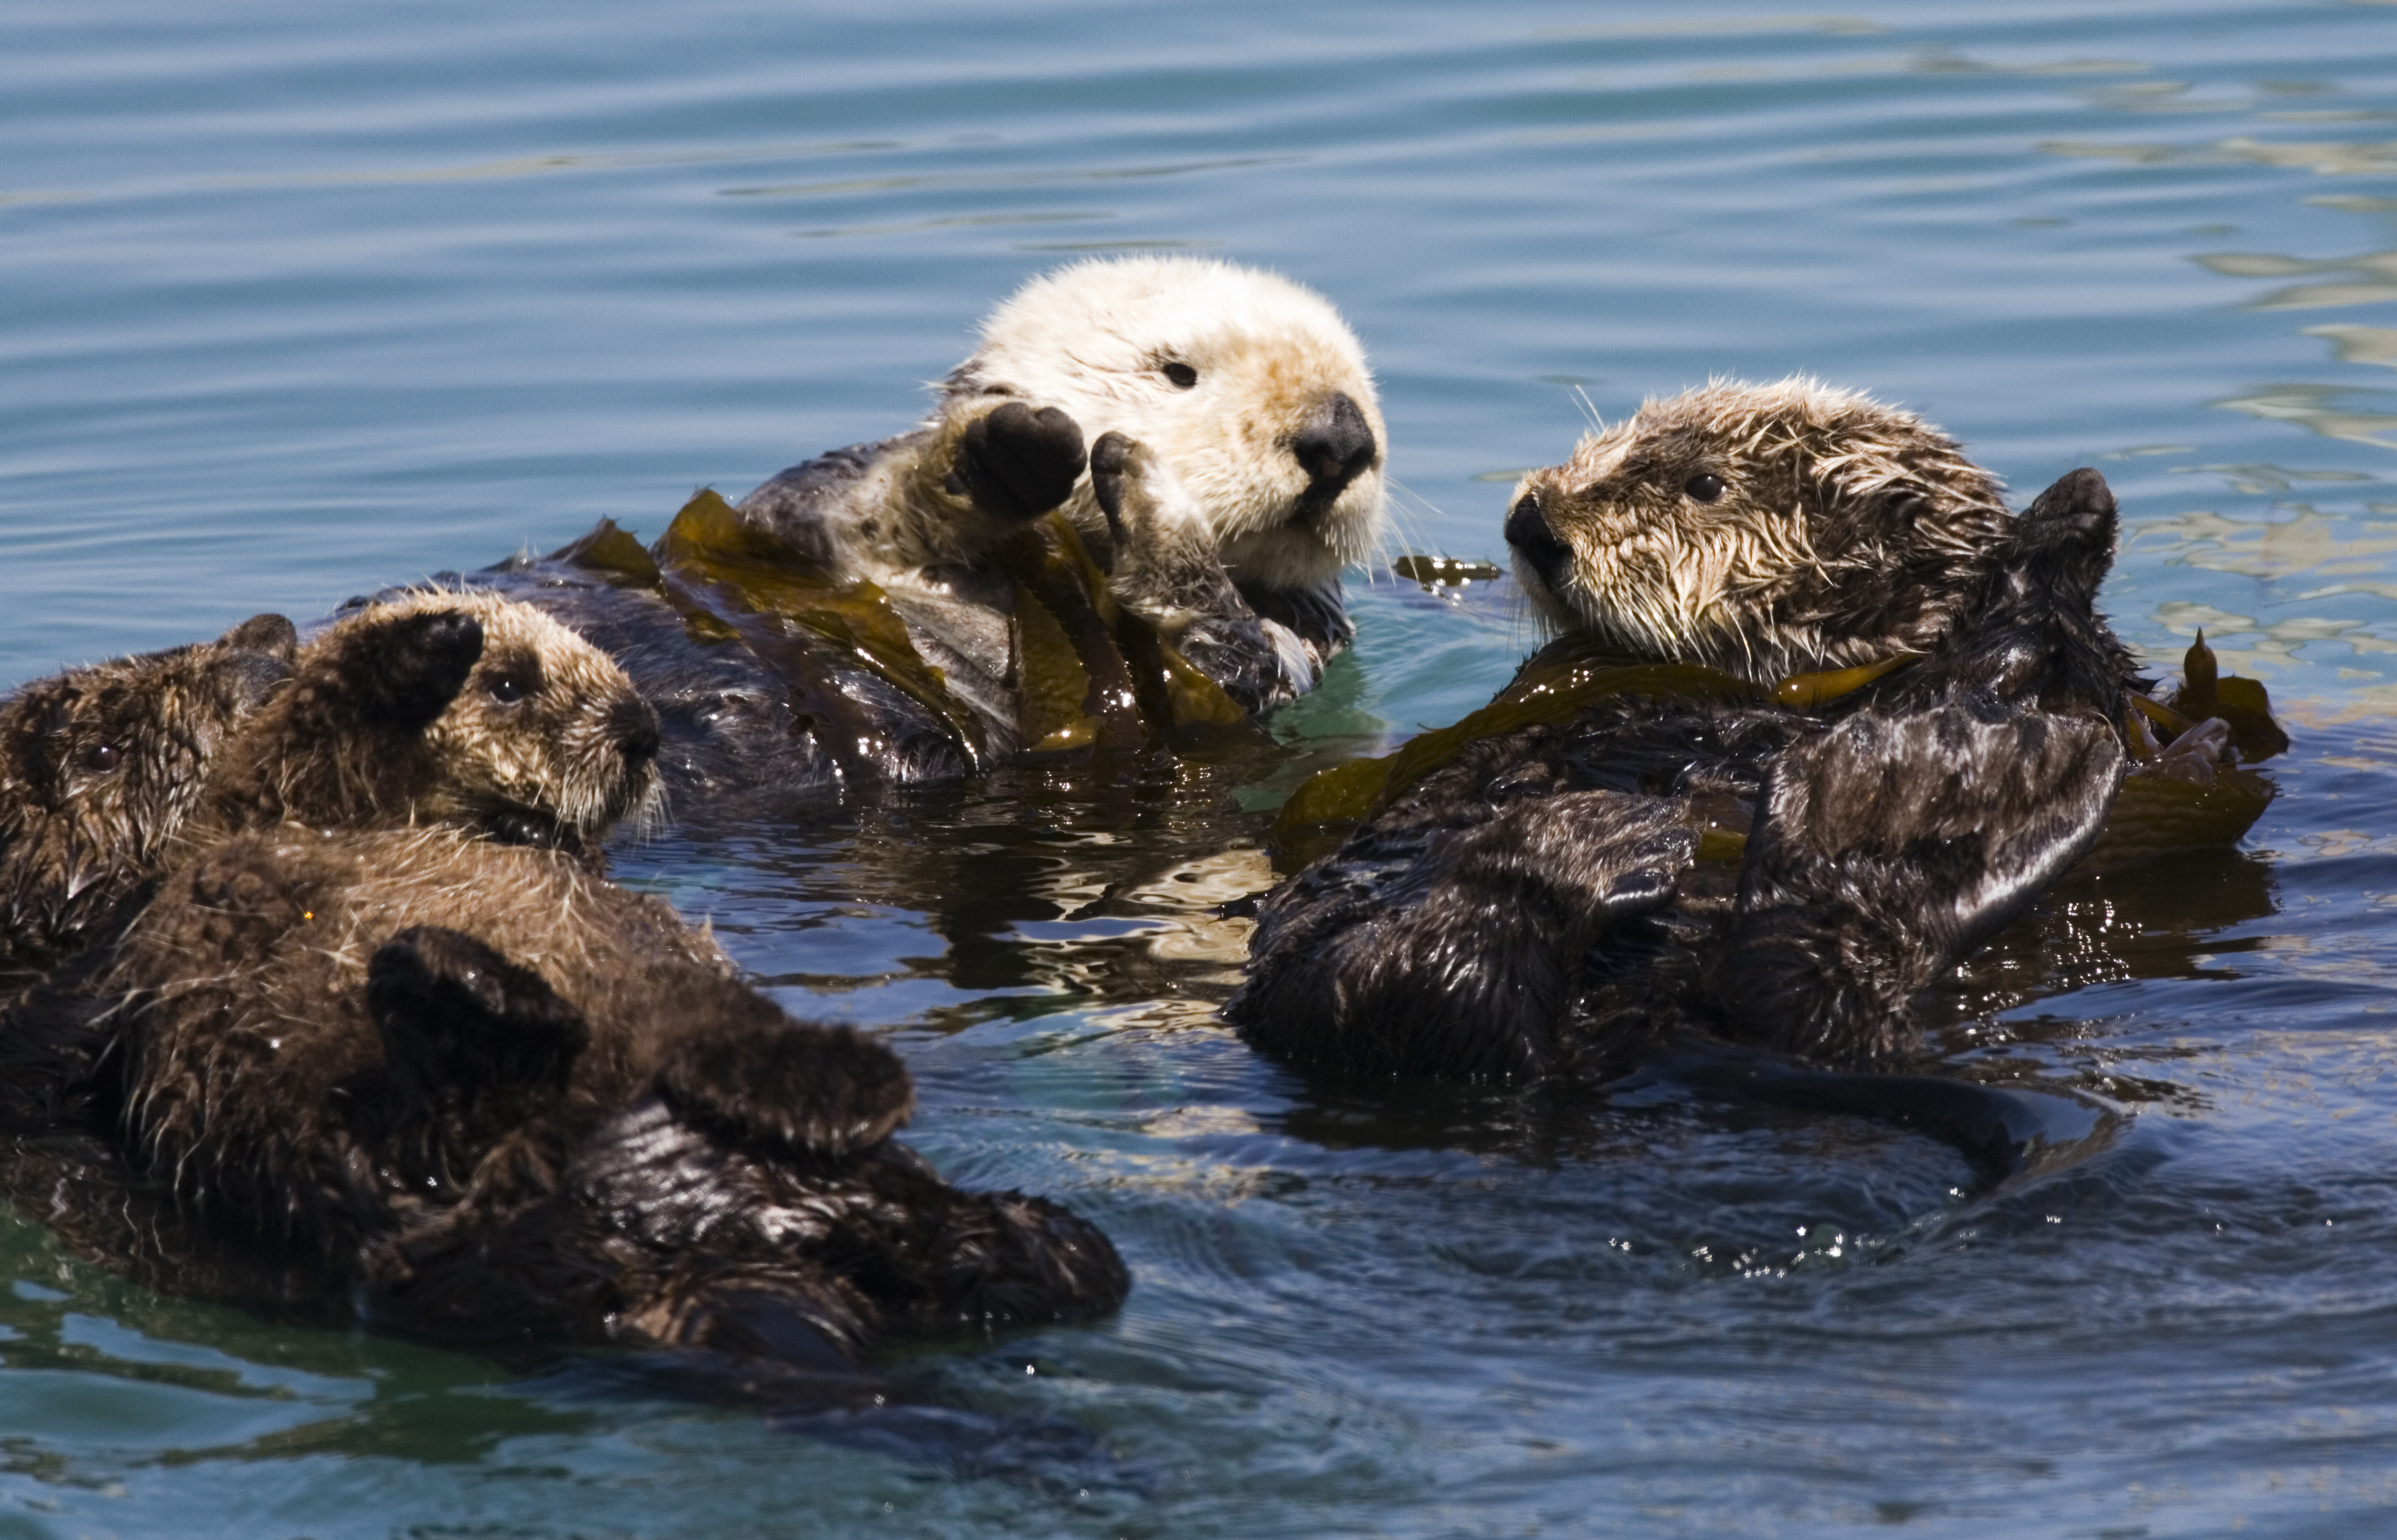 https://upload.wikimedia.org/wikipedia/commons/8/8e/Four_sea_otters.JPG